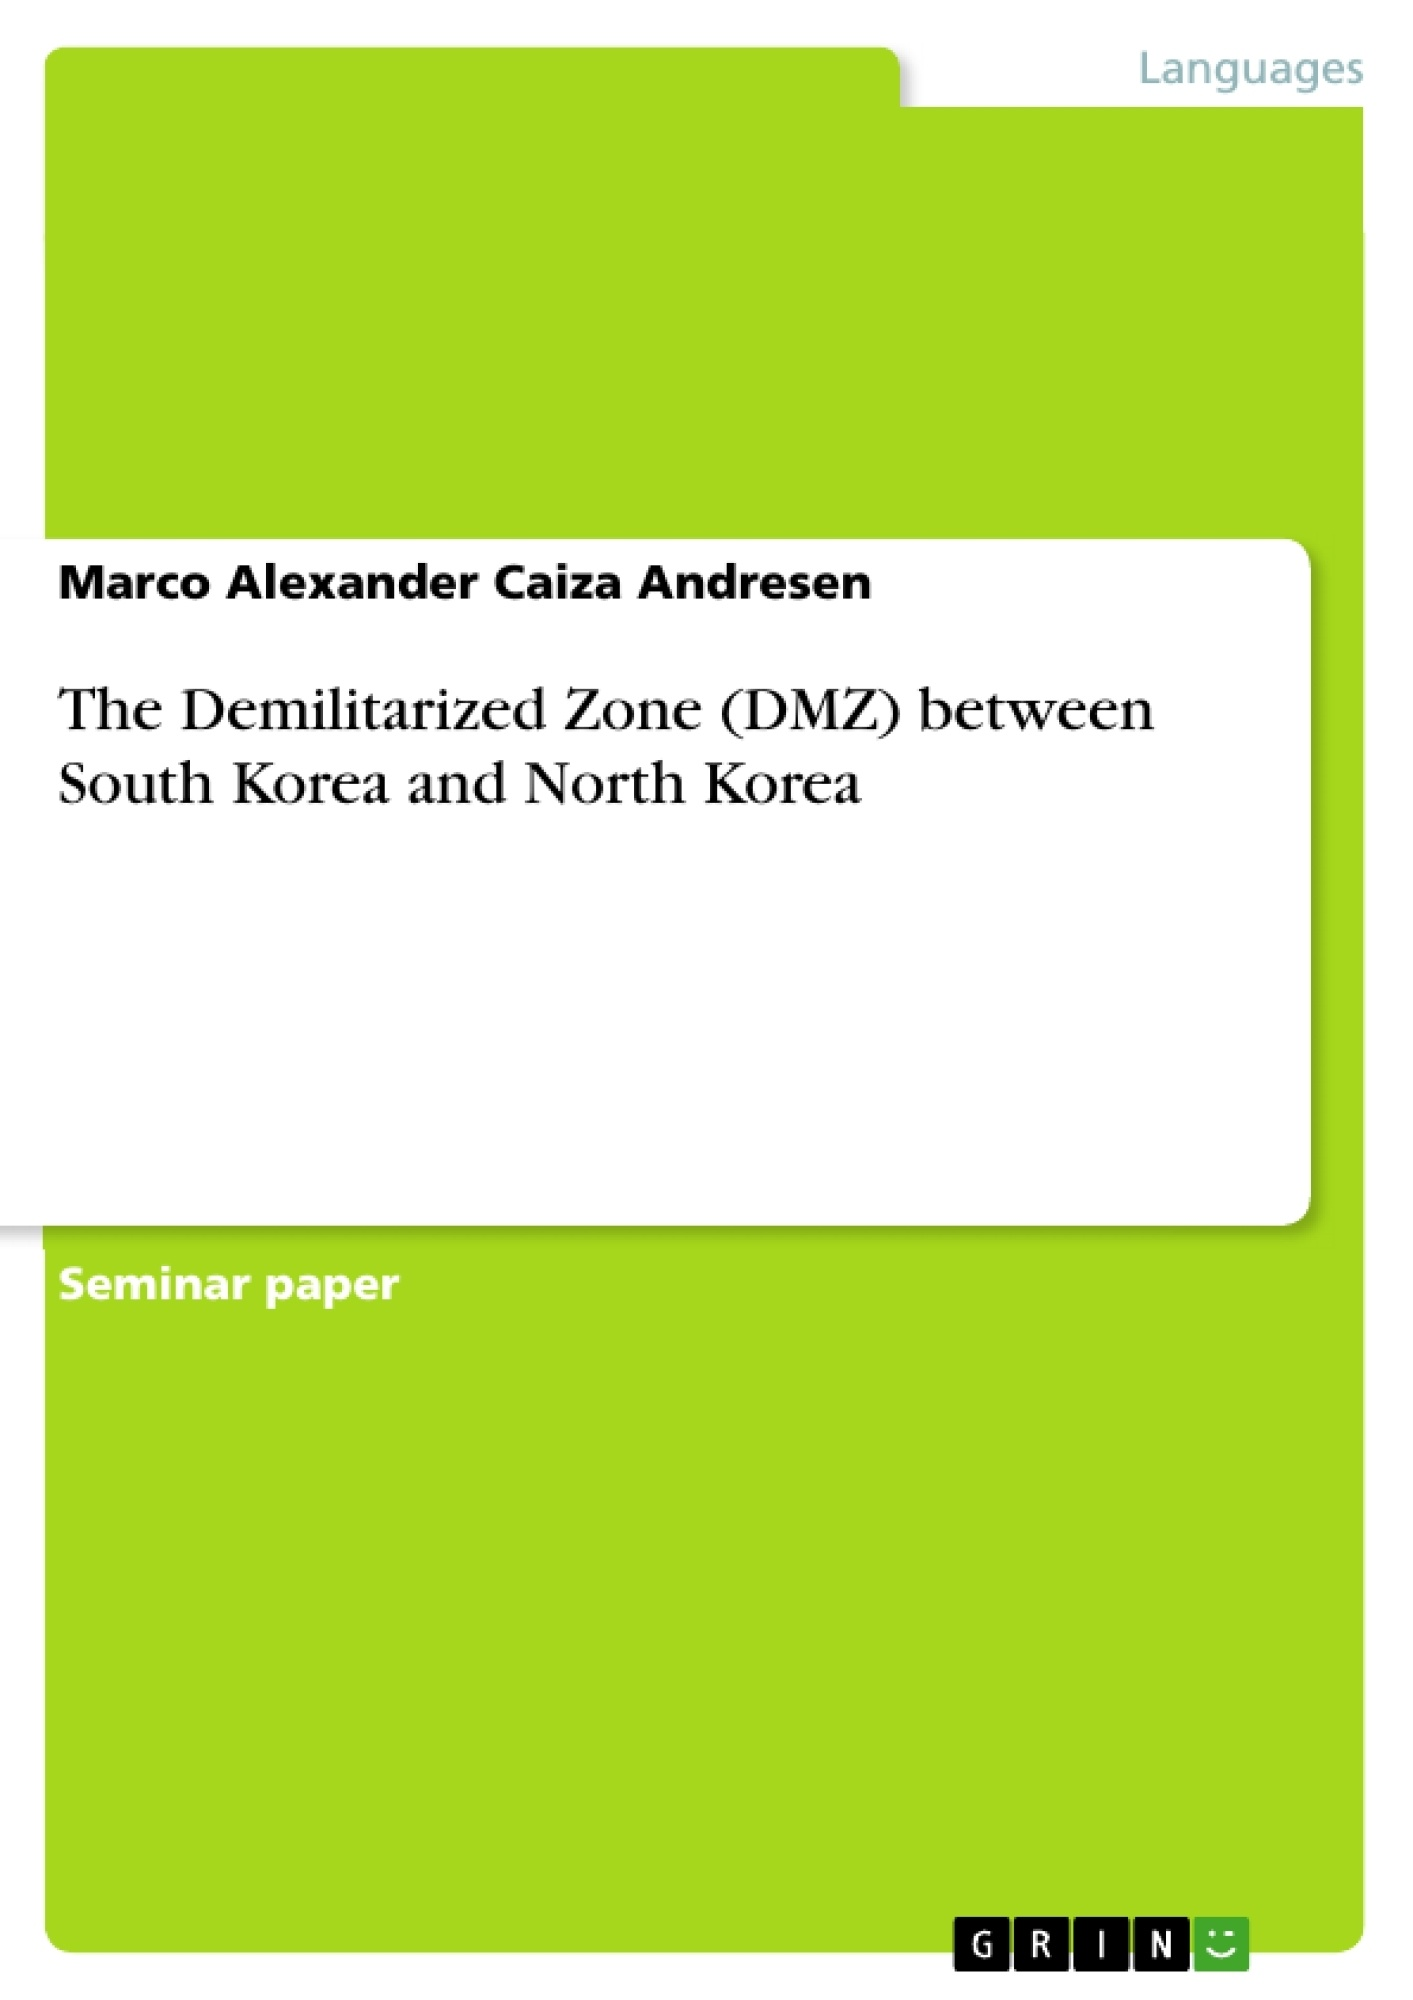 Title: The Demilitarized Zone (DMZ) between South Korea and North Korea